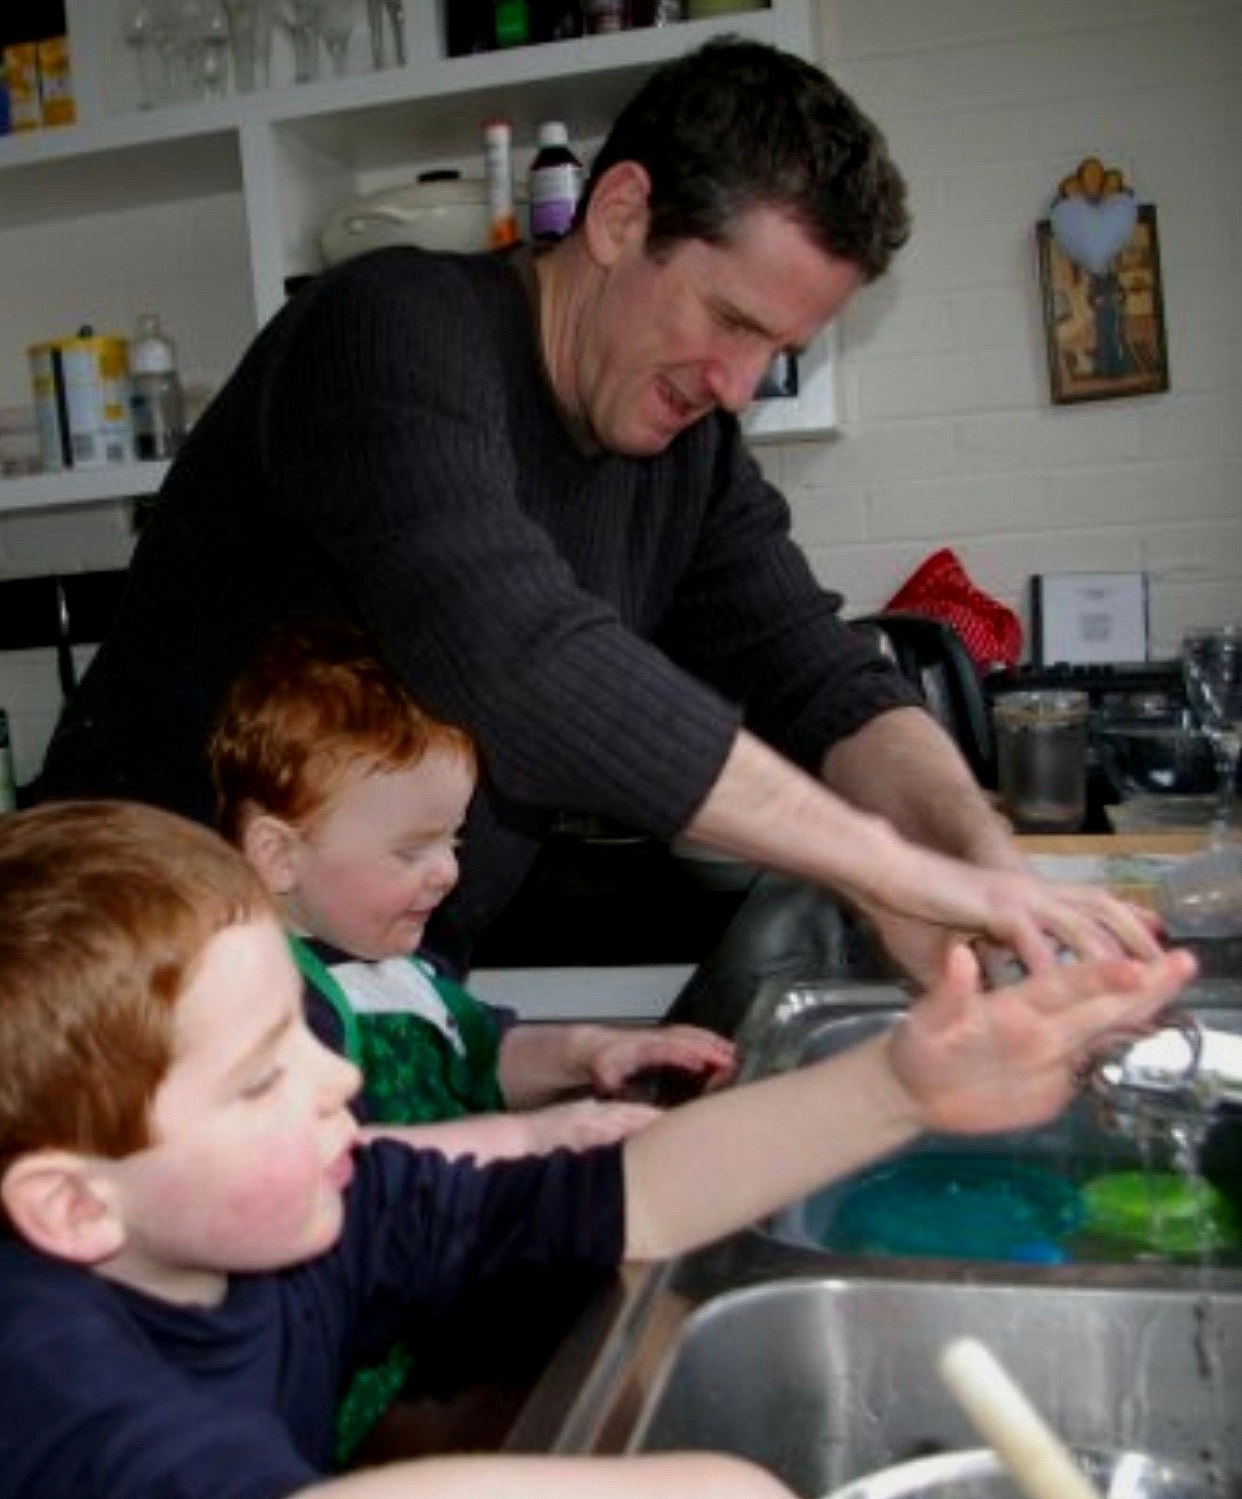 Parenting Magic - My boys with their dad busy in the kitchen having fun and making a beautiful mess! This was over 10 years ago so these guys are now my teenagers - 16 and 13 - a whole different ball game!